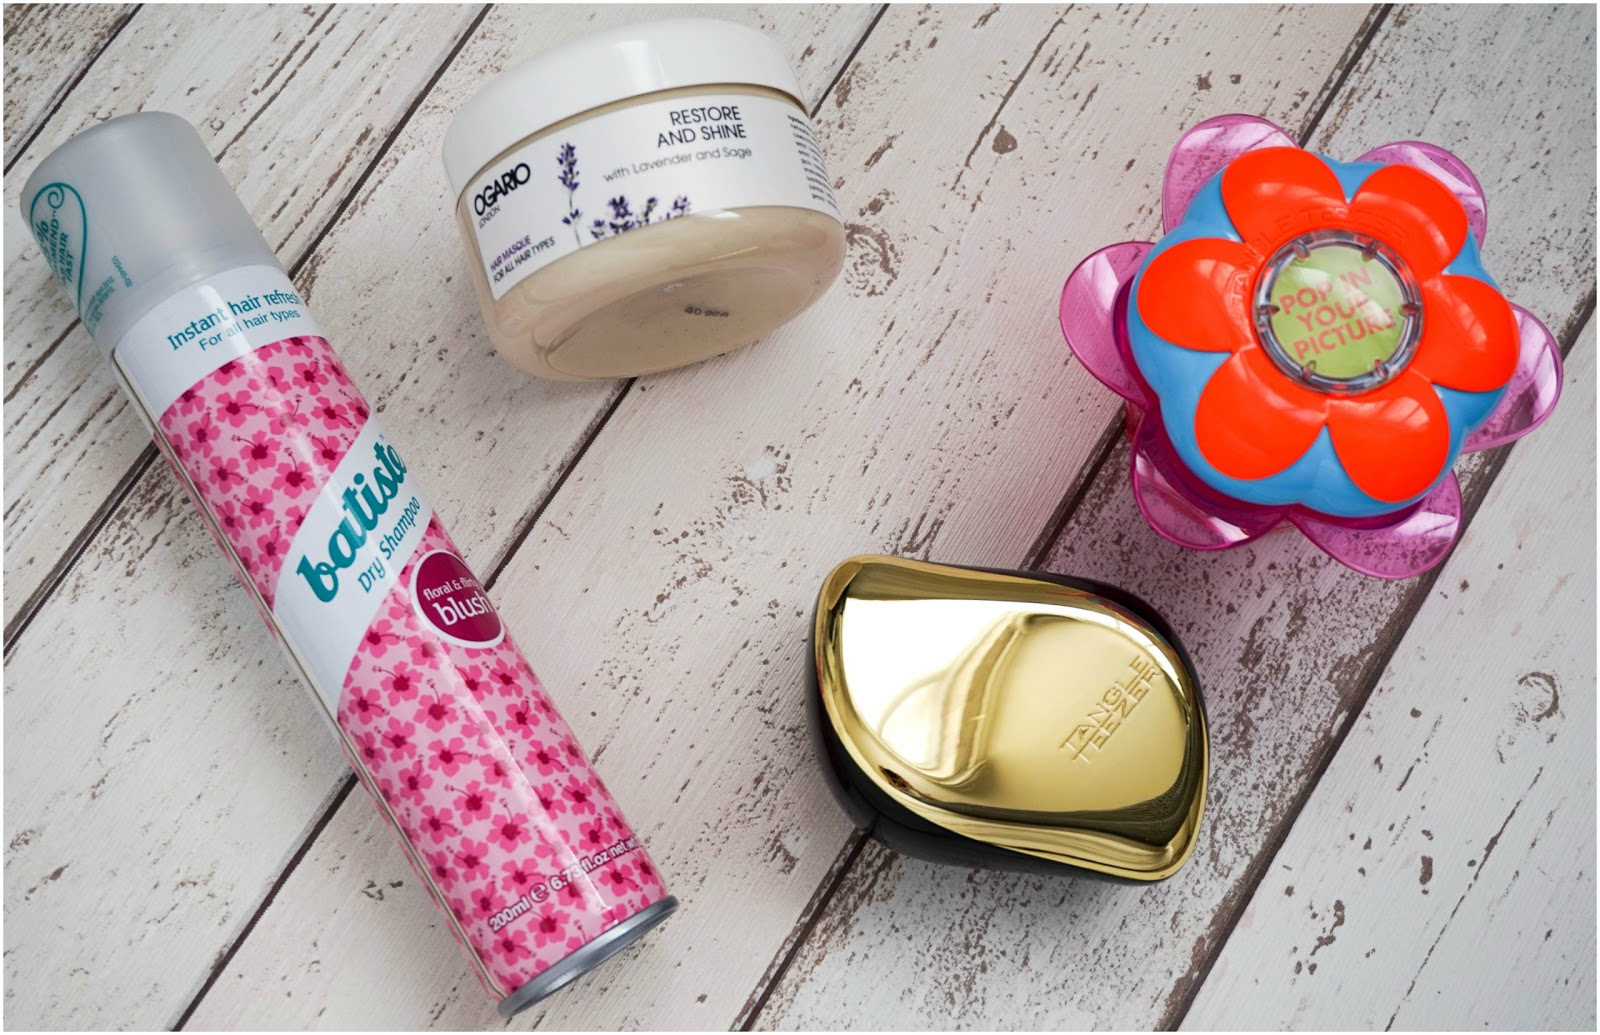 Hair Heroes ft. Ogario London, Batiste & Tangle Teezer